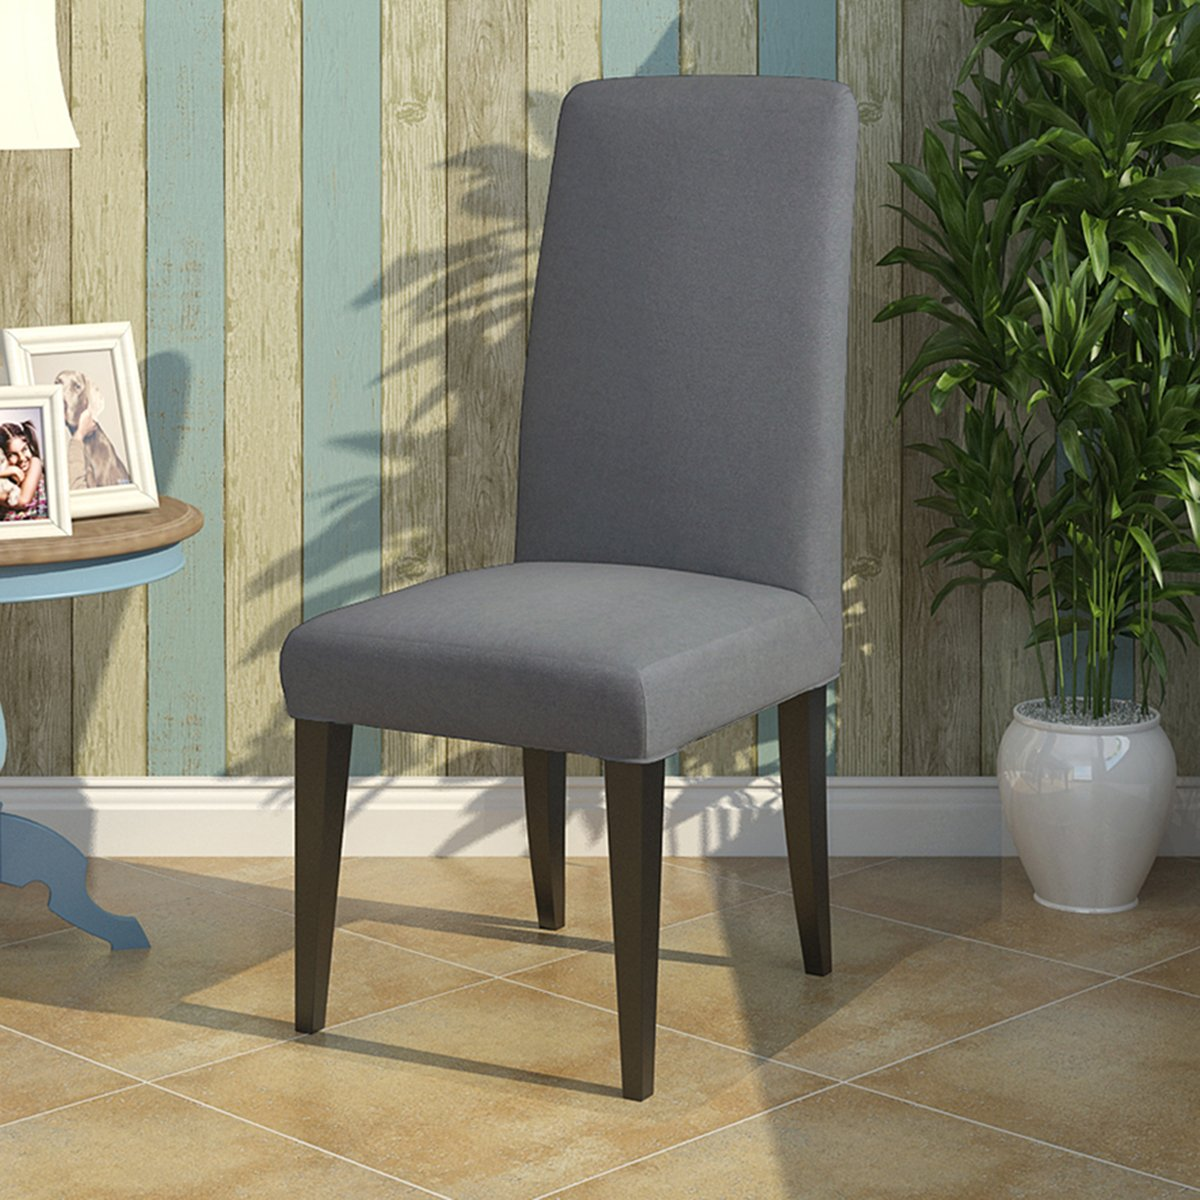 Knit Spandex Fabric Stretch Dining Room Chair Slipcovers Set of 4 Navy